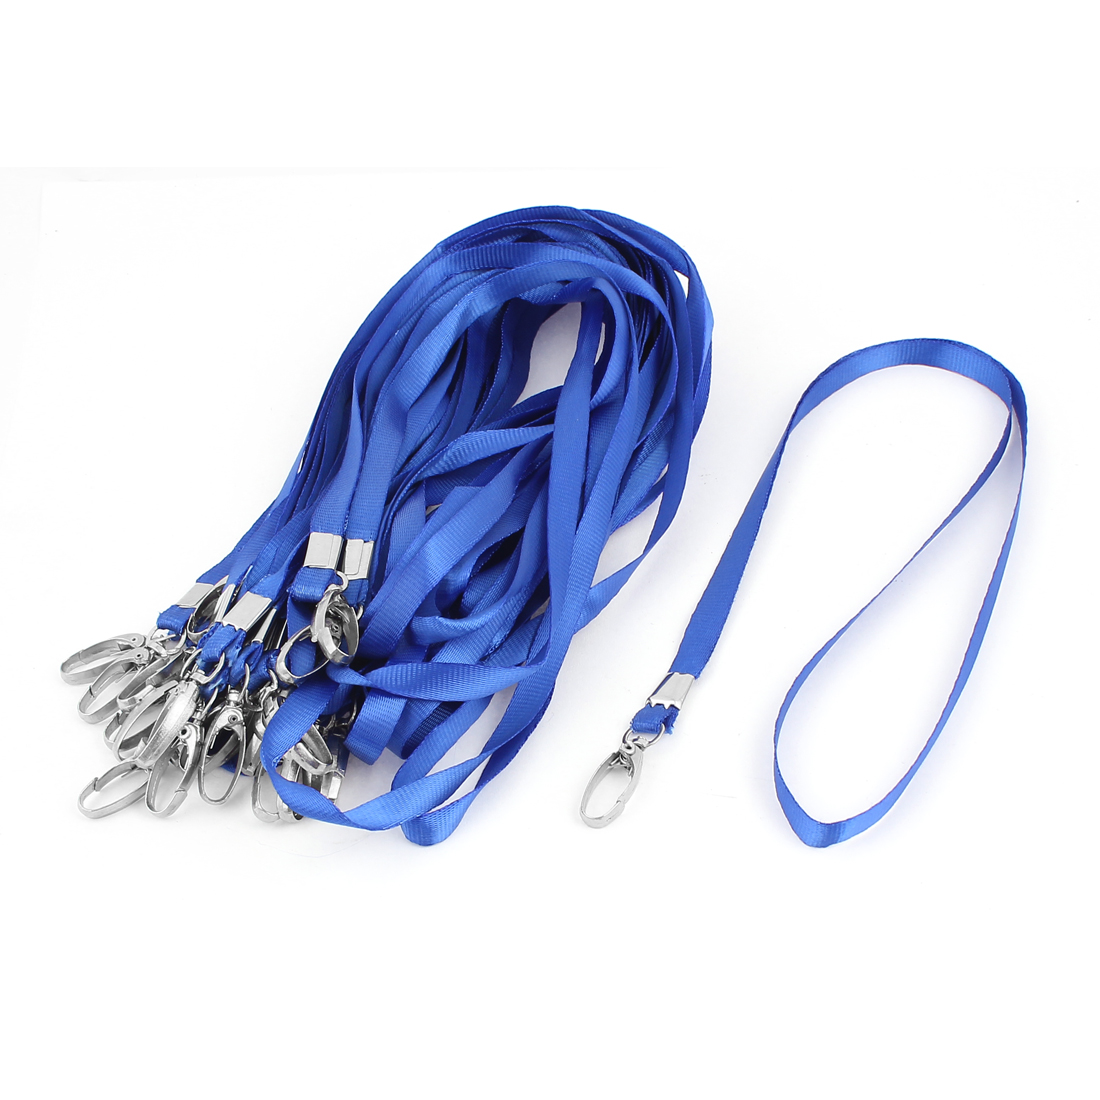 Metal Swivel Clip Office ID Name Card Badge Holder Neck Strap Lanyard Blue 24Pcs